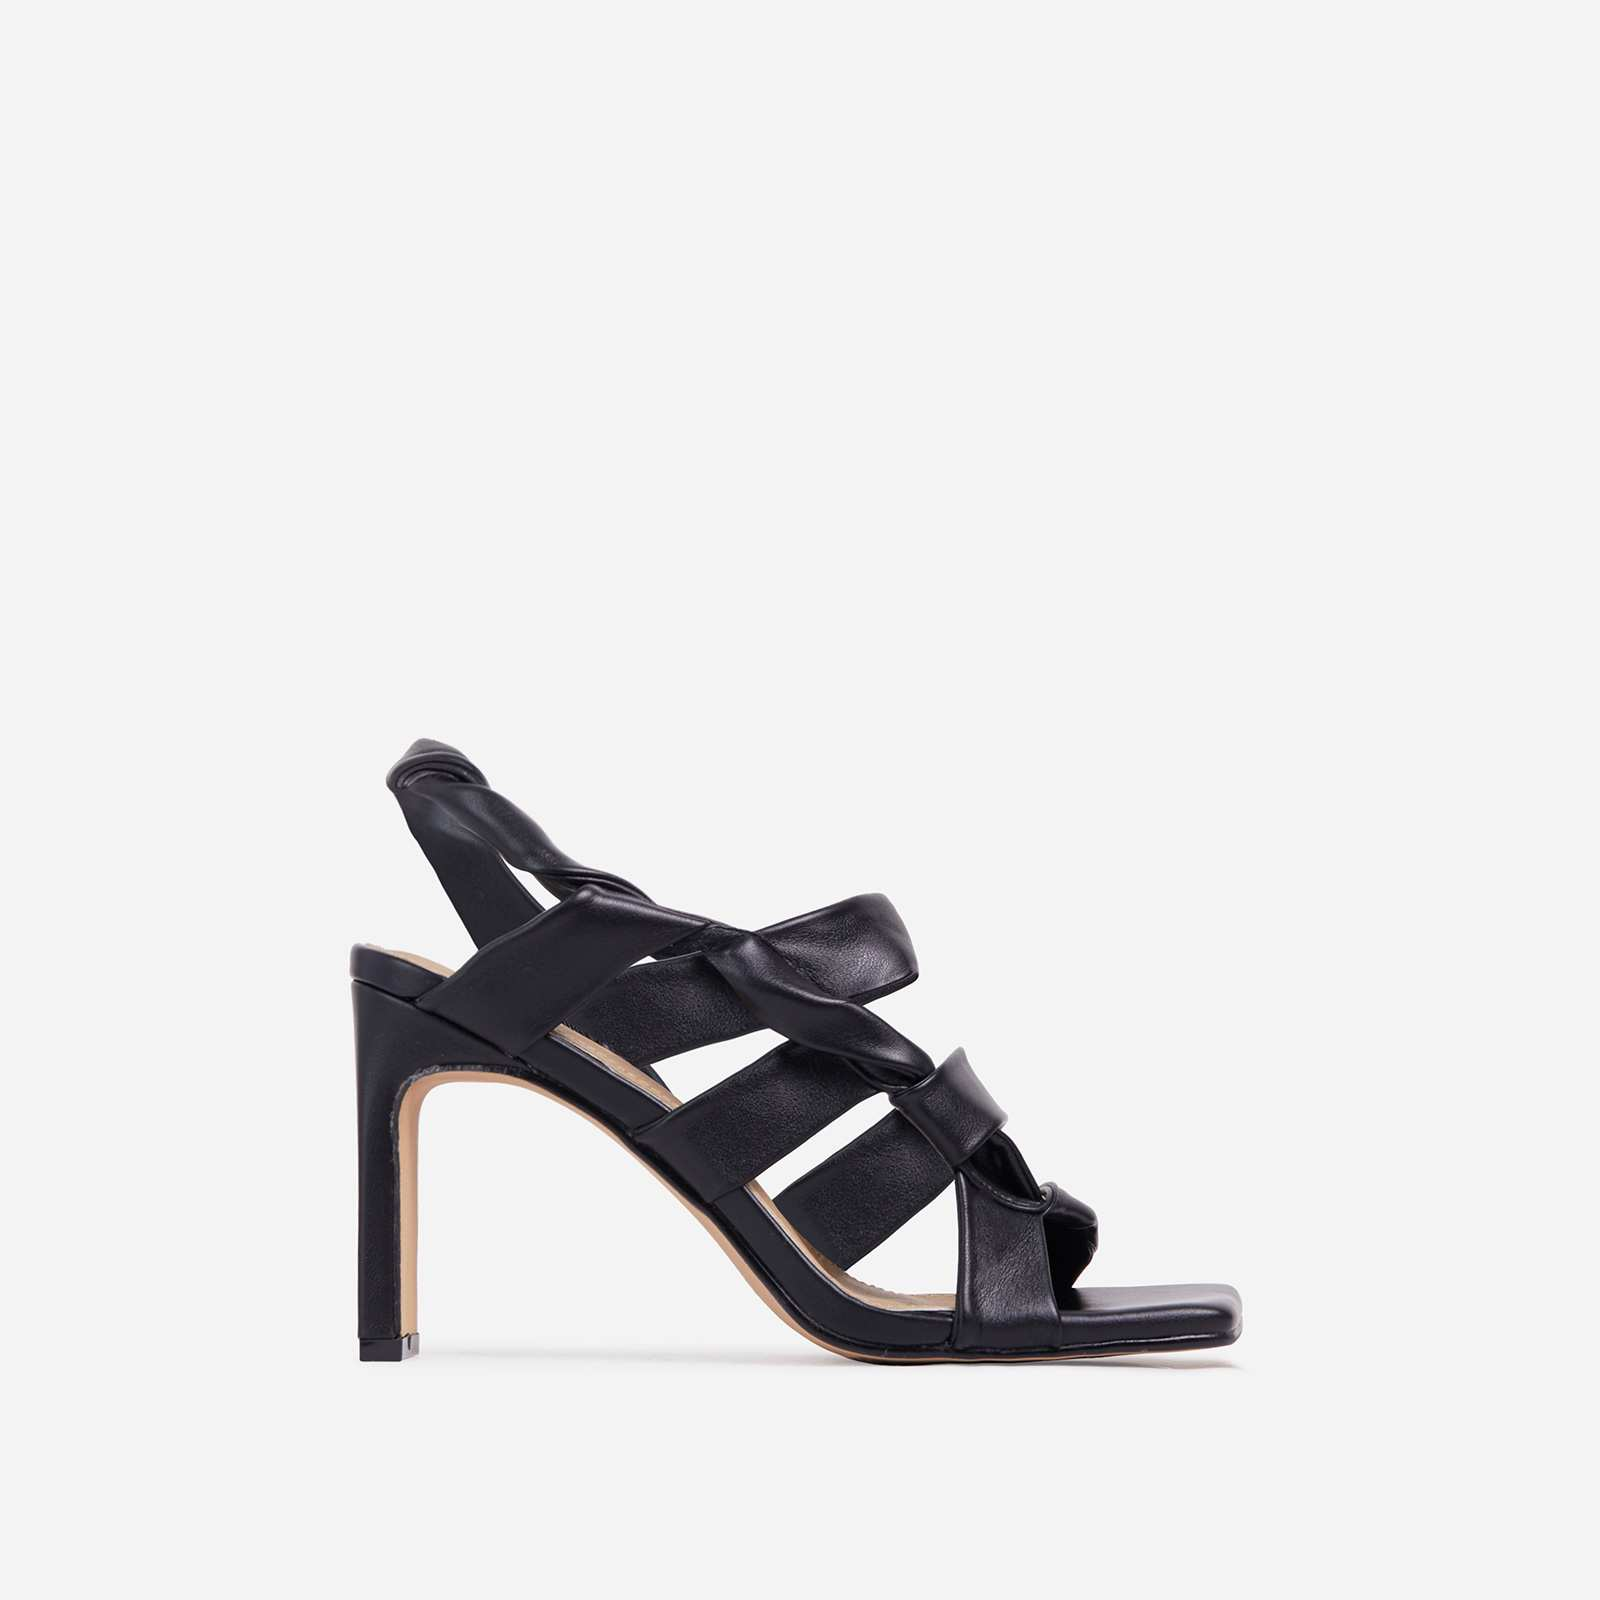 Ripple Strappy Caged Square Toe Heel Mule In Black Faux Leather